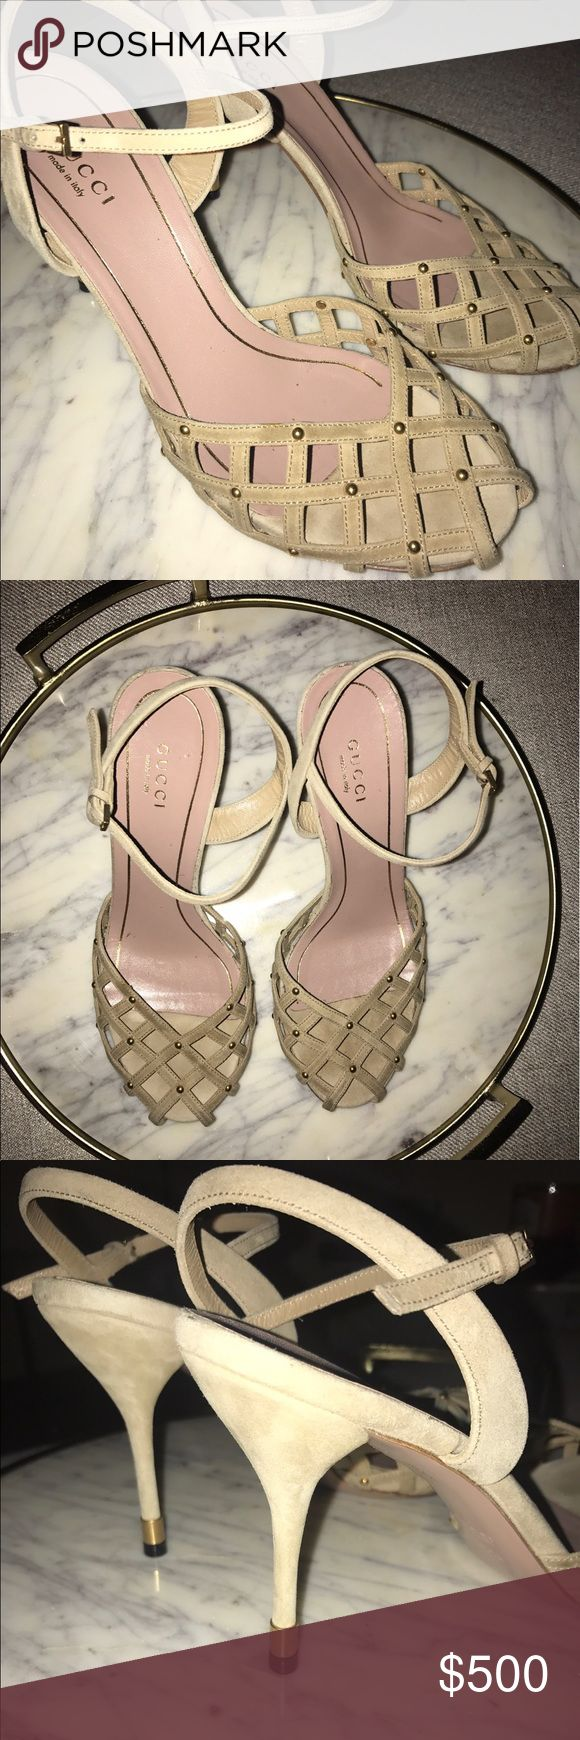 Gucci suede neutral pumps Gucci suede neutral pumps. Front of shoe has a caged detail with studded toe tips. Worn a handful of times just like every Gucci shoe any woman owns 😉. Gucci Shoes Heels